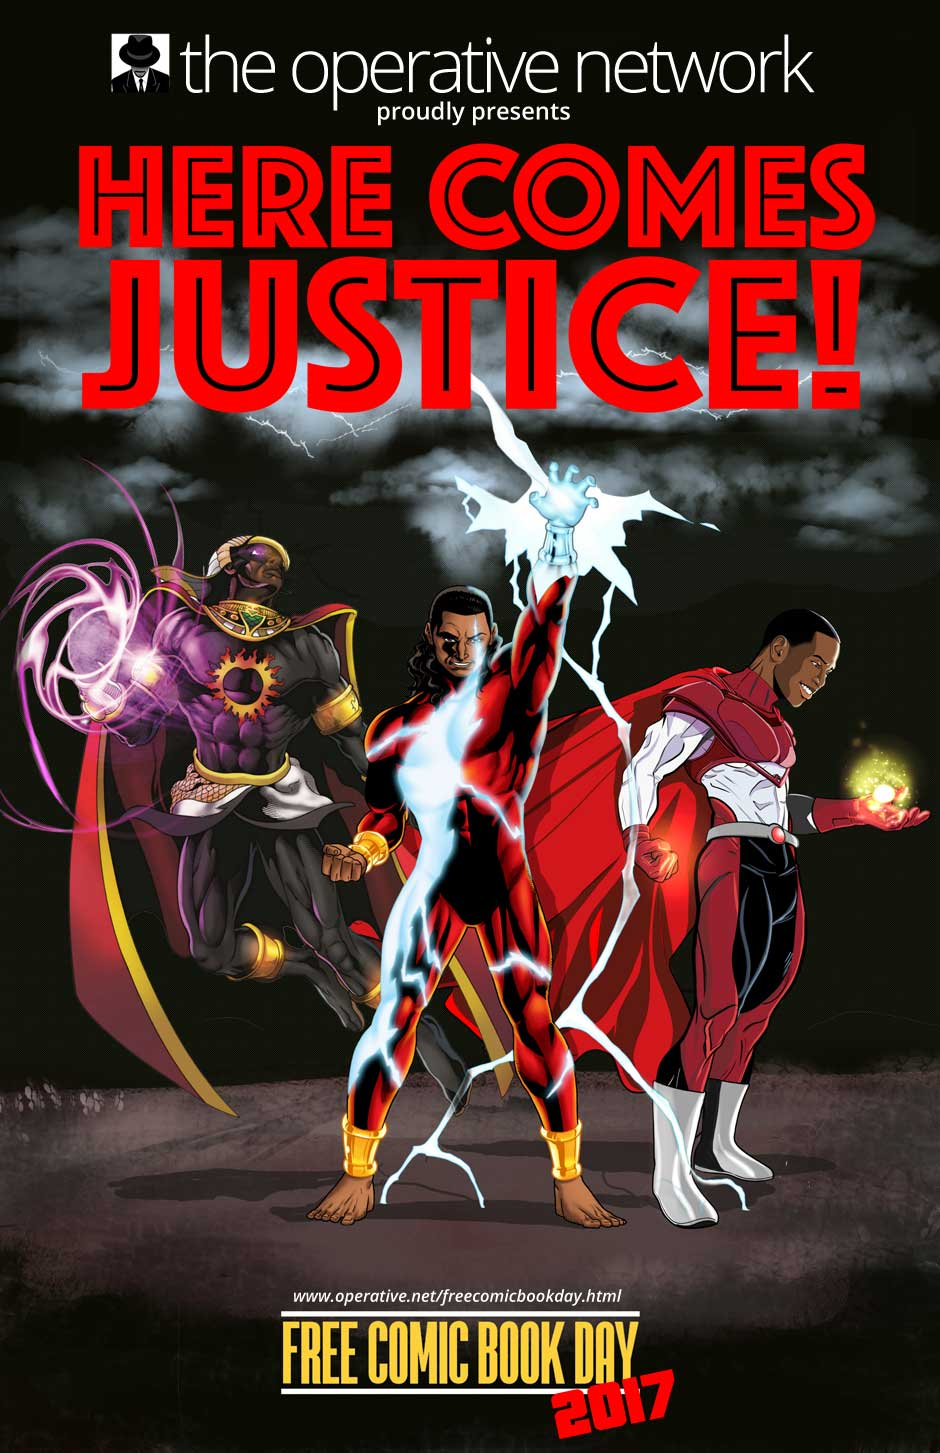 the cover to the free comic book day PDF here comes justice